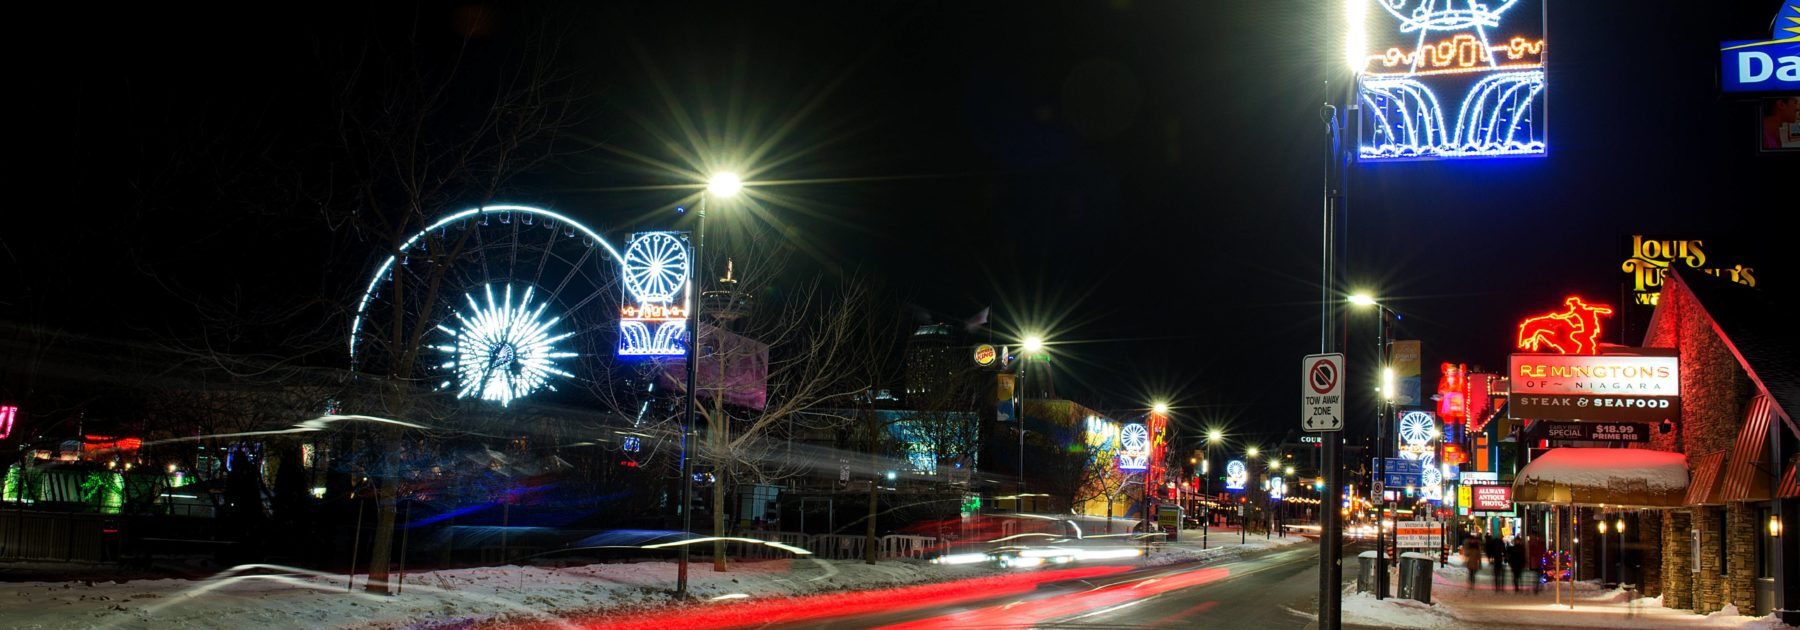 Clifton Hill Lighting Displays Winter Festival Of Lights